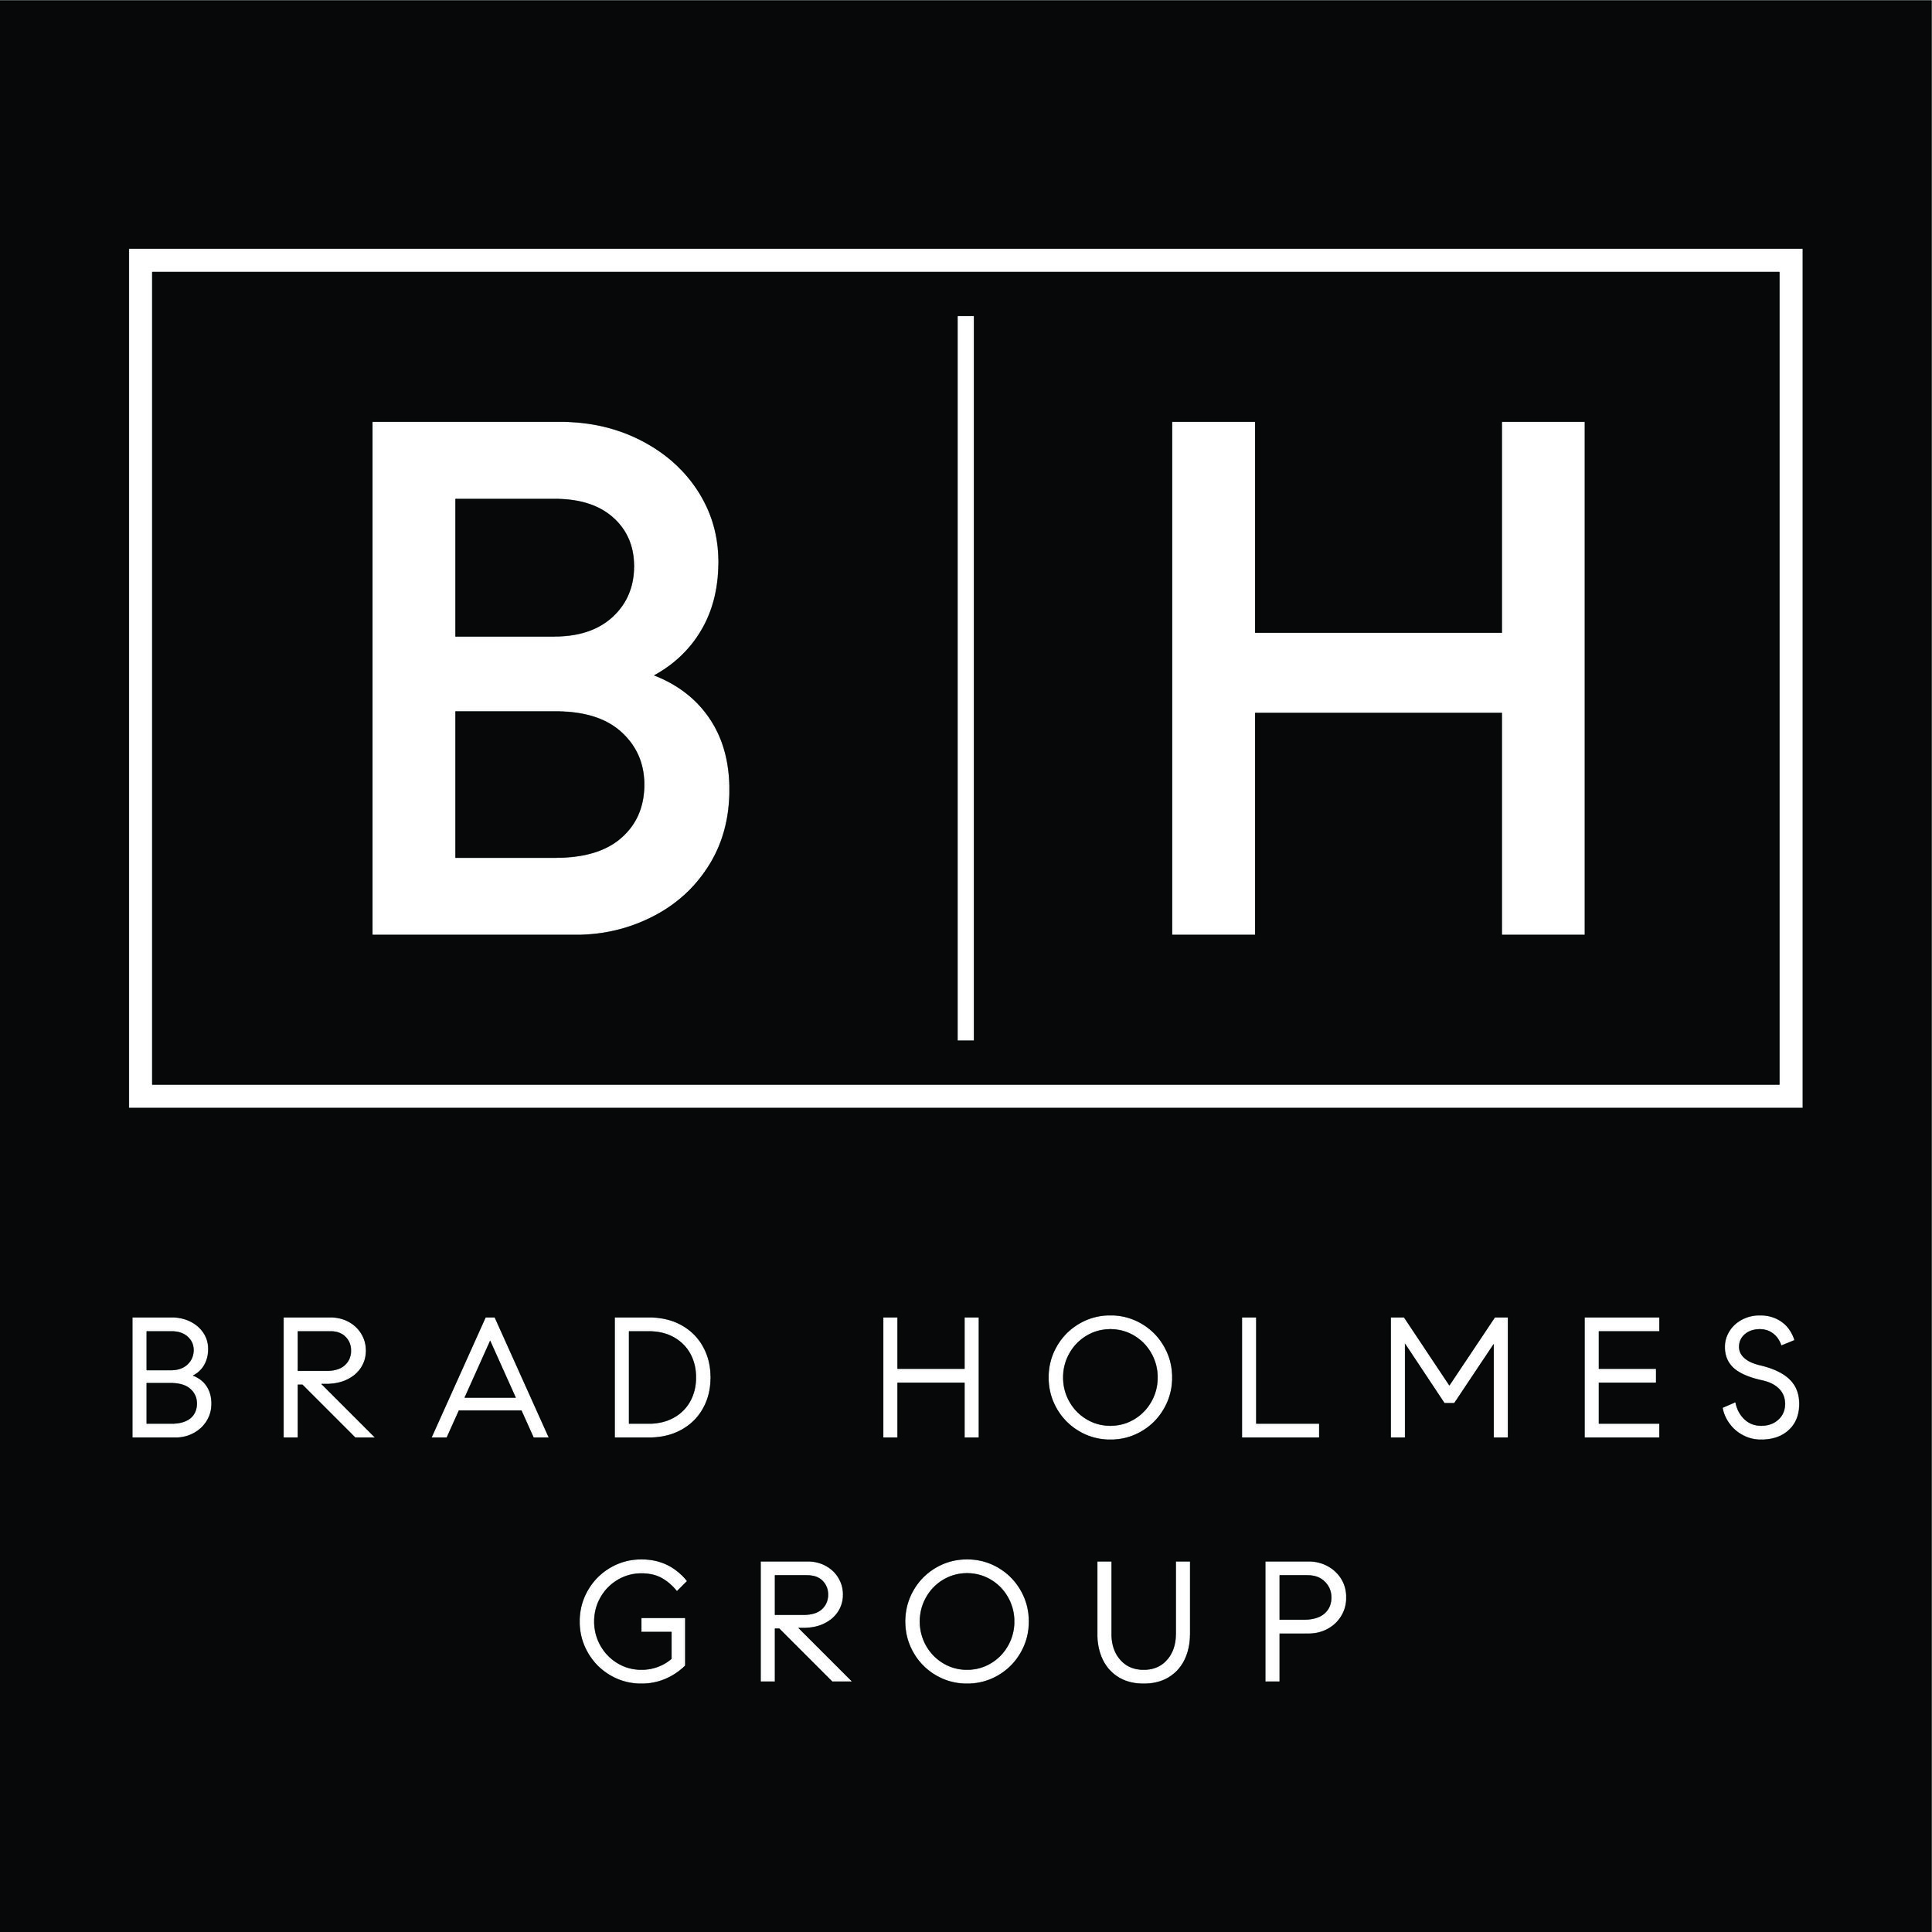 Brad Holmes Group  (323) 673-1001  https://www.bradholmesre.com/   Raised in Los Angeles, Brad is exceptionally well-respected for his professional track record. He is proud to be the person people turn to when it is time to buy or sell their home and understands what it takes to get the deal done. Creative marketing, tough negotiation and an intimate knowledge of the market allow Brad to protect his clients' interests and ensure their success. He listens, problem solves and brings honesty and integrity to every transaction.